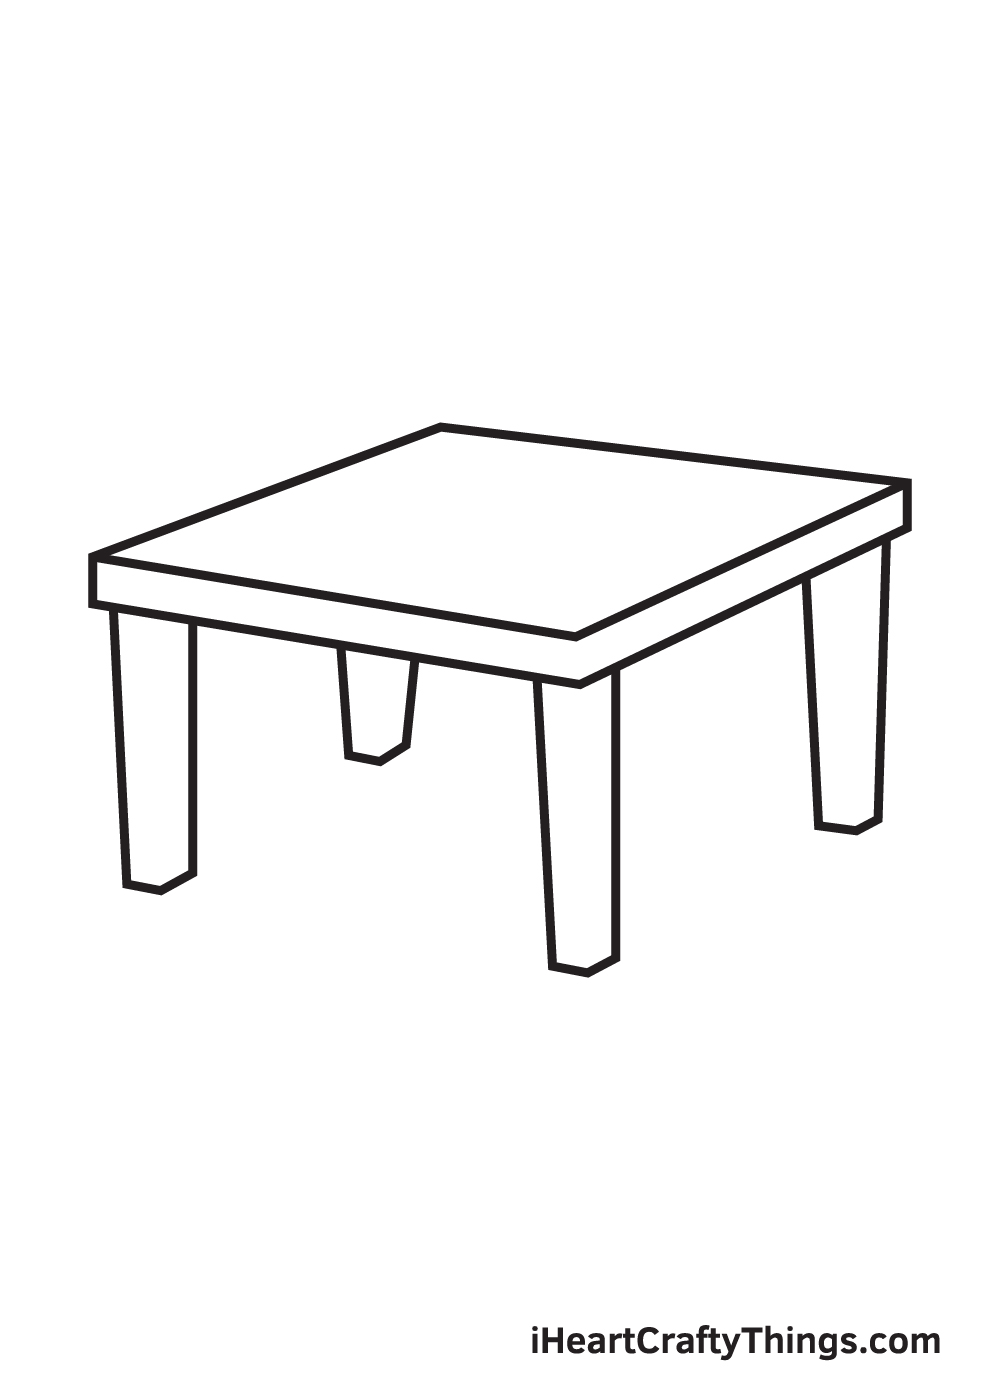 table drawing step 7